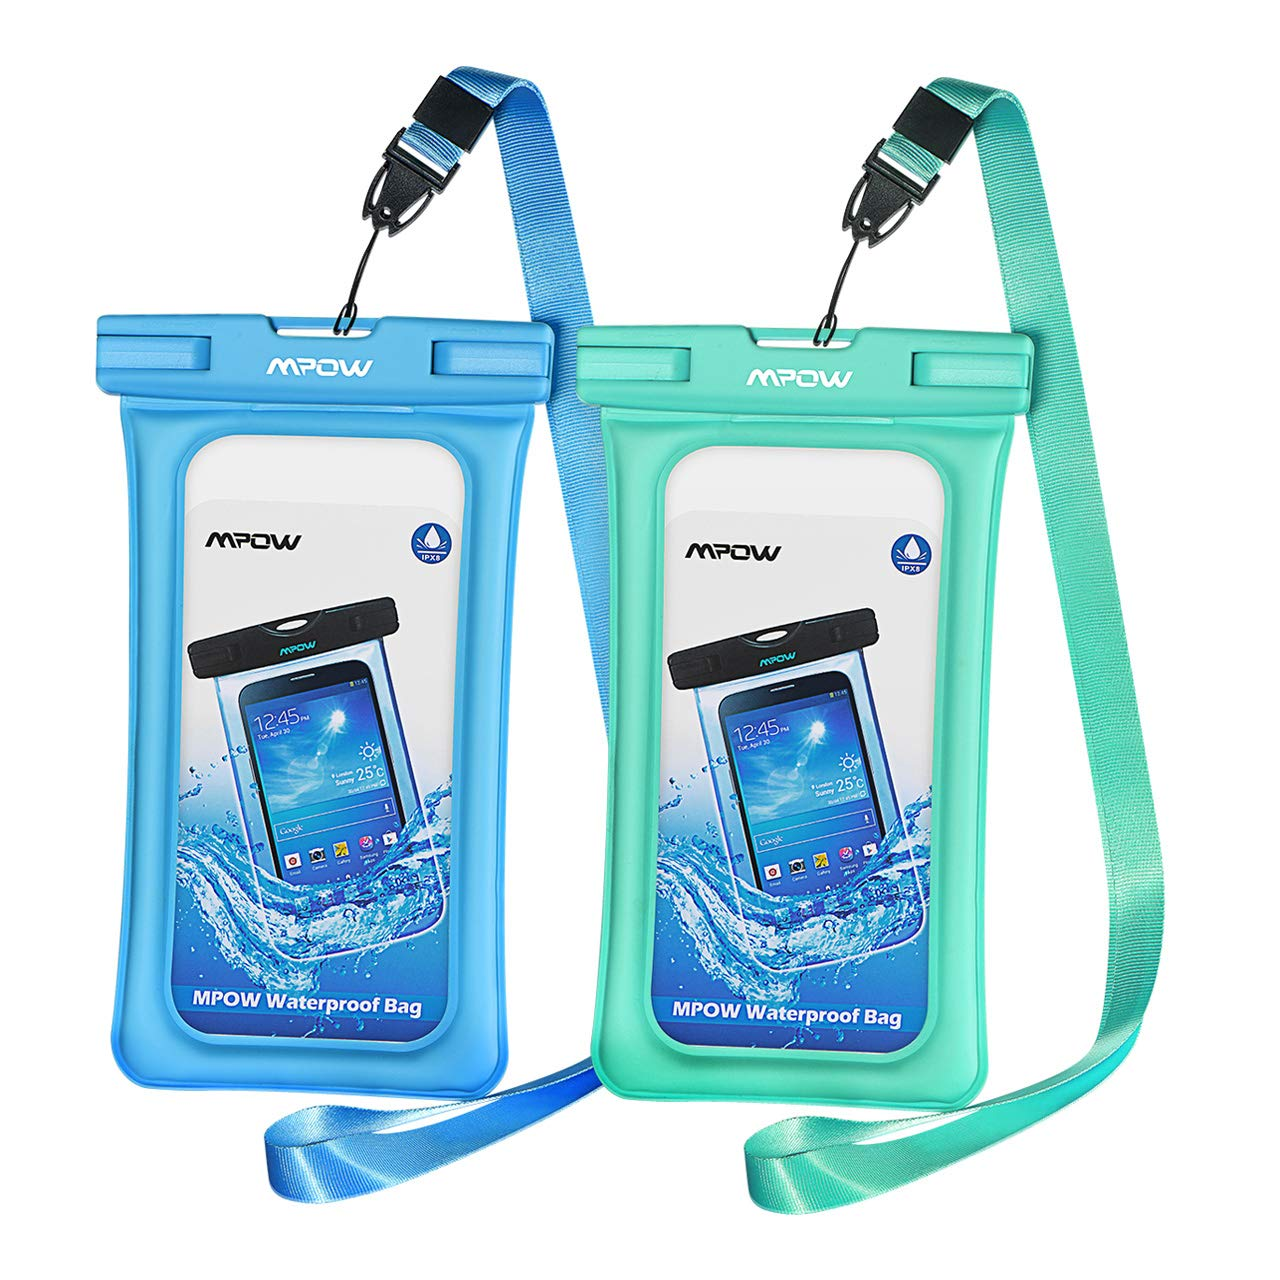 Mpow 084 Waterproof Phone Pouch Floating, IPX8 Universal Waterproof Case Underwater Dry Bag Compatible iPhone Xs Max/Xr/X/8/8plus/7/7plus Galaxy s10/s9/s8 Note 9 Google Pixel up to 6.5'' (Blue+Green) by Mpow